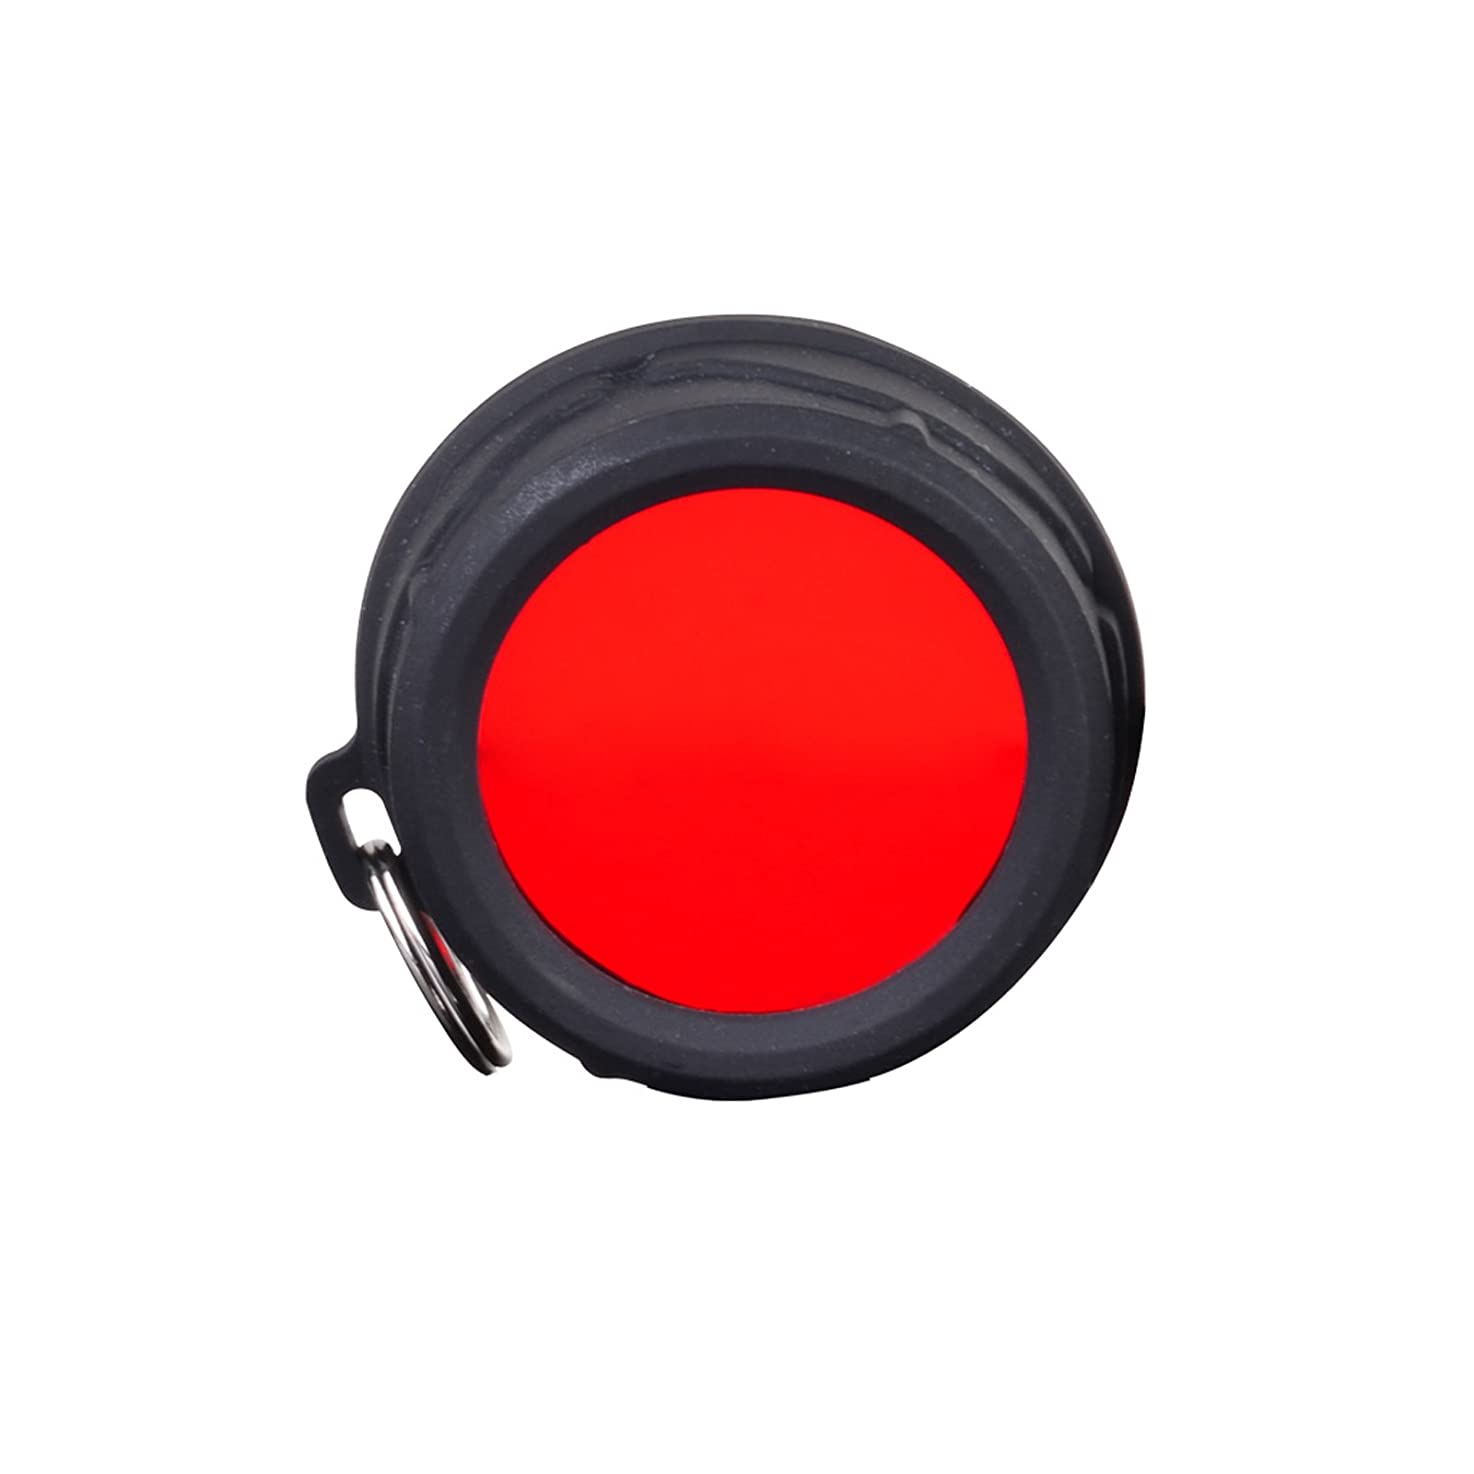 Klarus FT11 Filter,Can be Compatible with 35mm Bezel(Like XT10/XT11/XT12/XTQ1/XT11S/XT11GT/RS11),Available for Red,Gree,Blue and White Color (Red)